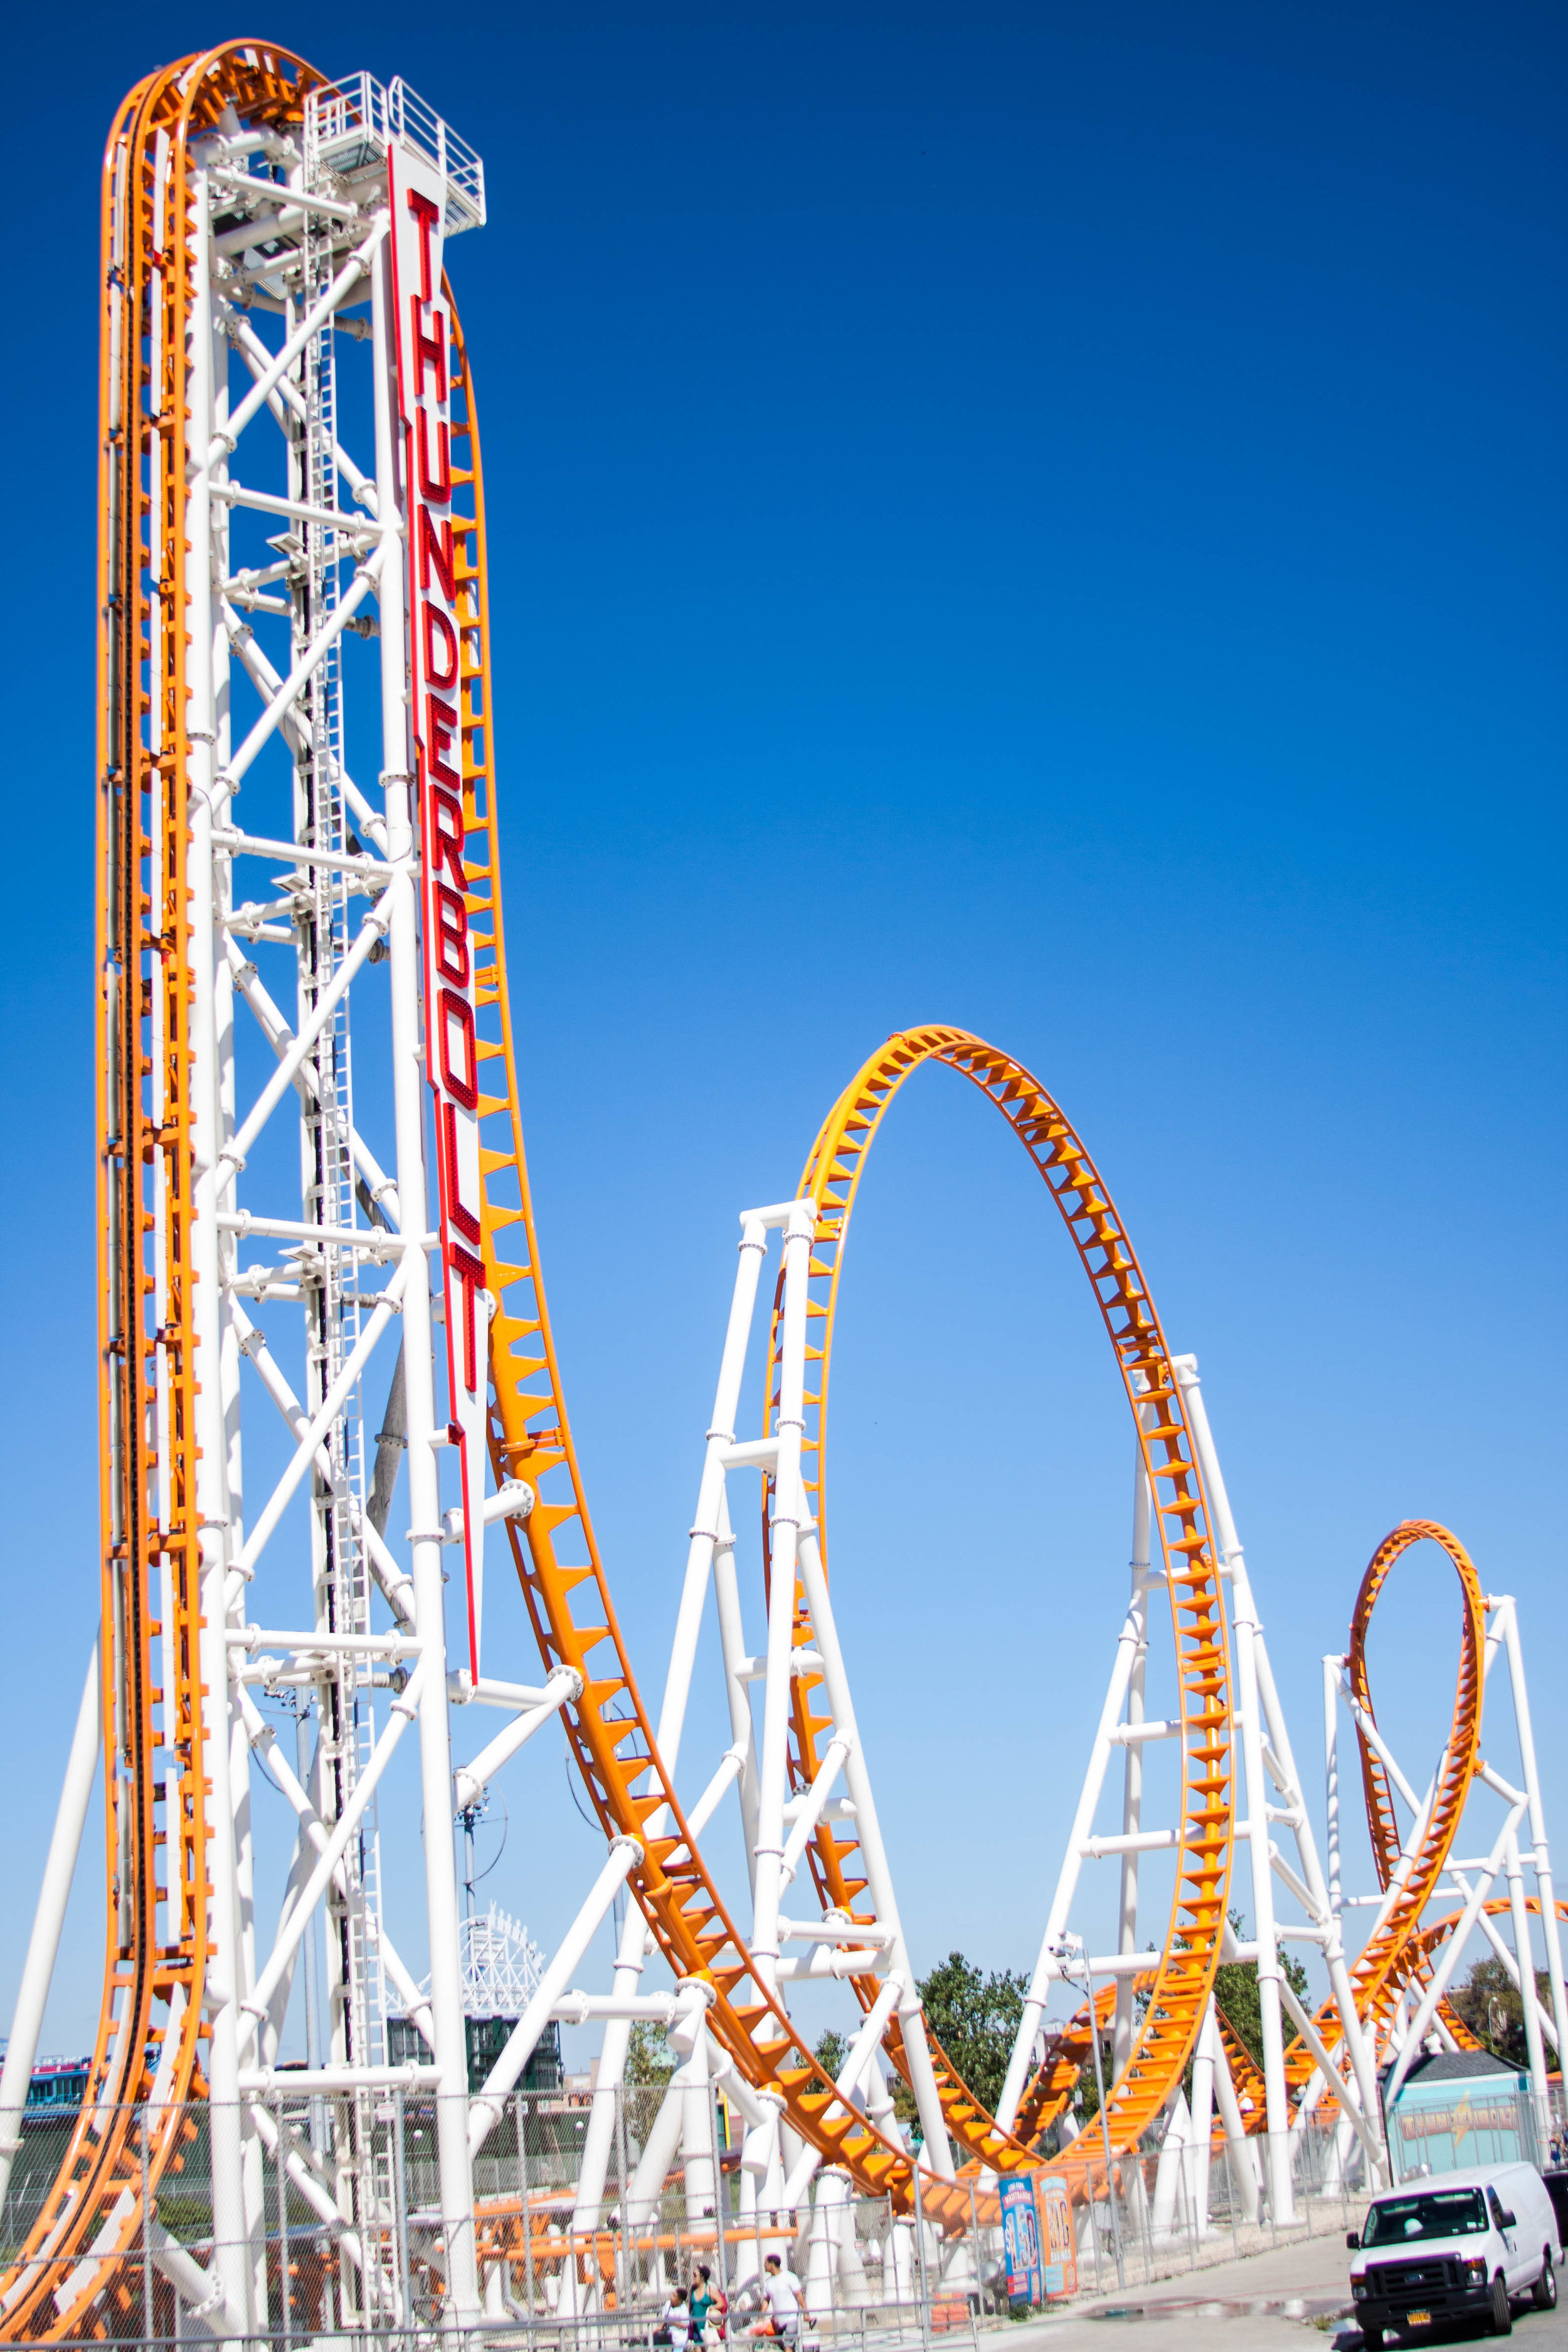 Wideshot of the Thunderbolt Roller Coaster, a steel roller coaster manufactured by Zamperla on Coney Island's Luna Park. MEP by 2L Engineering.